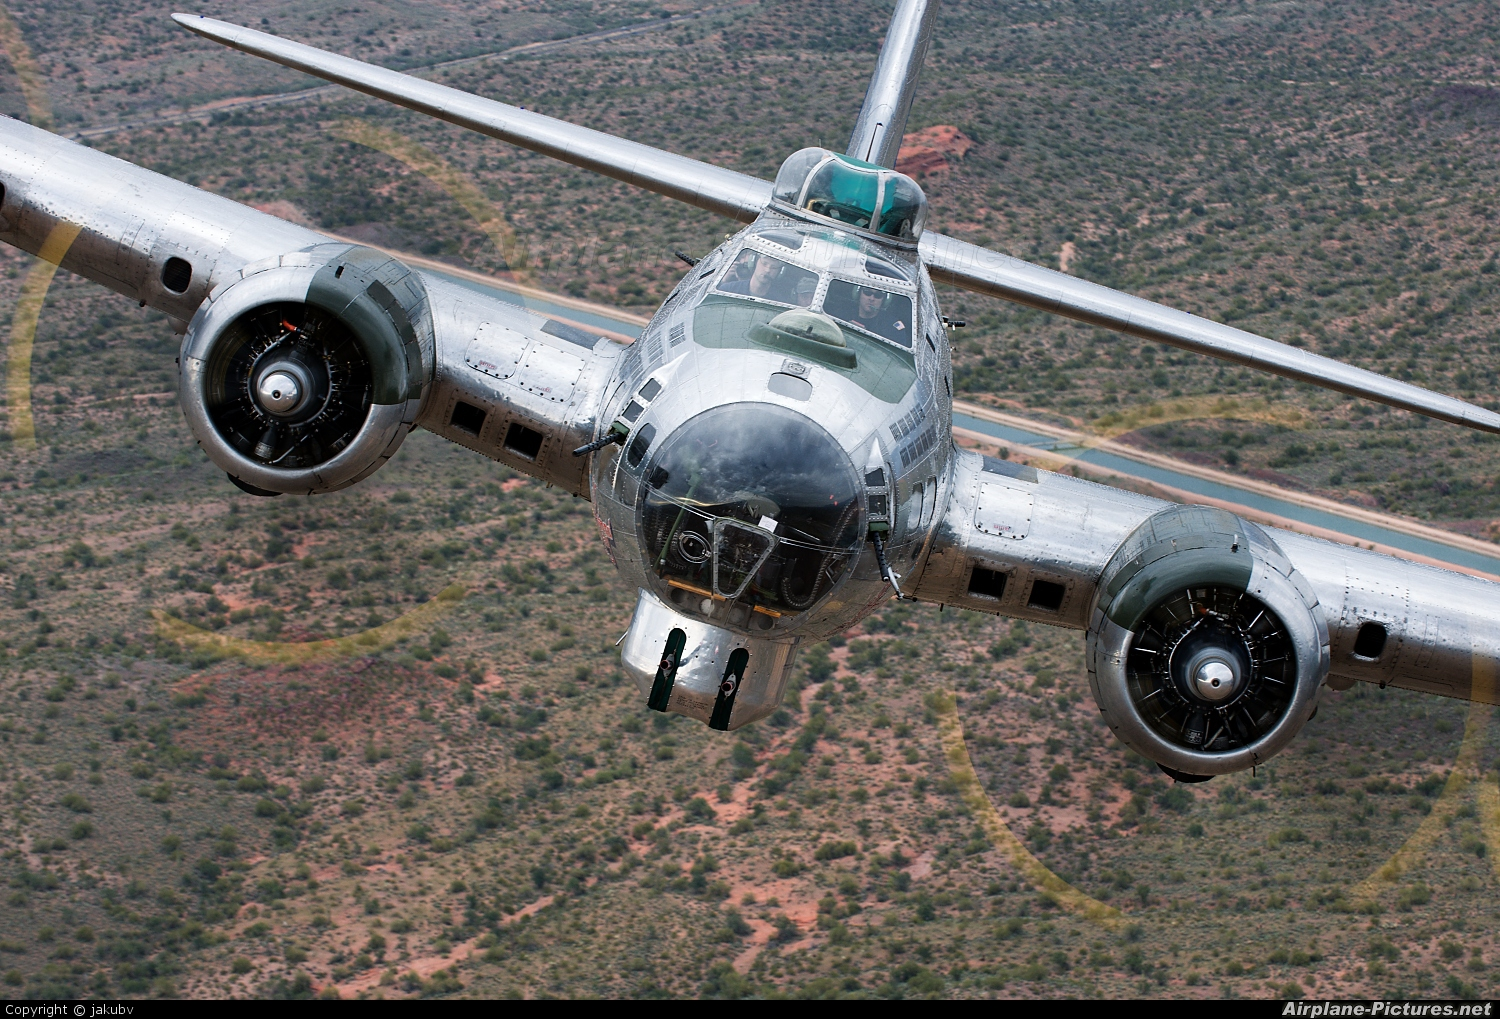 American Airpower Heritage Museum (CAF) N9323Z aircraft at In Flight - Arizona